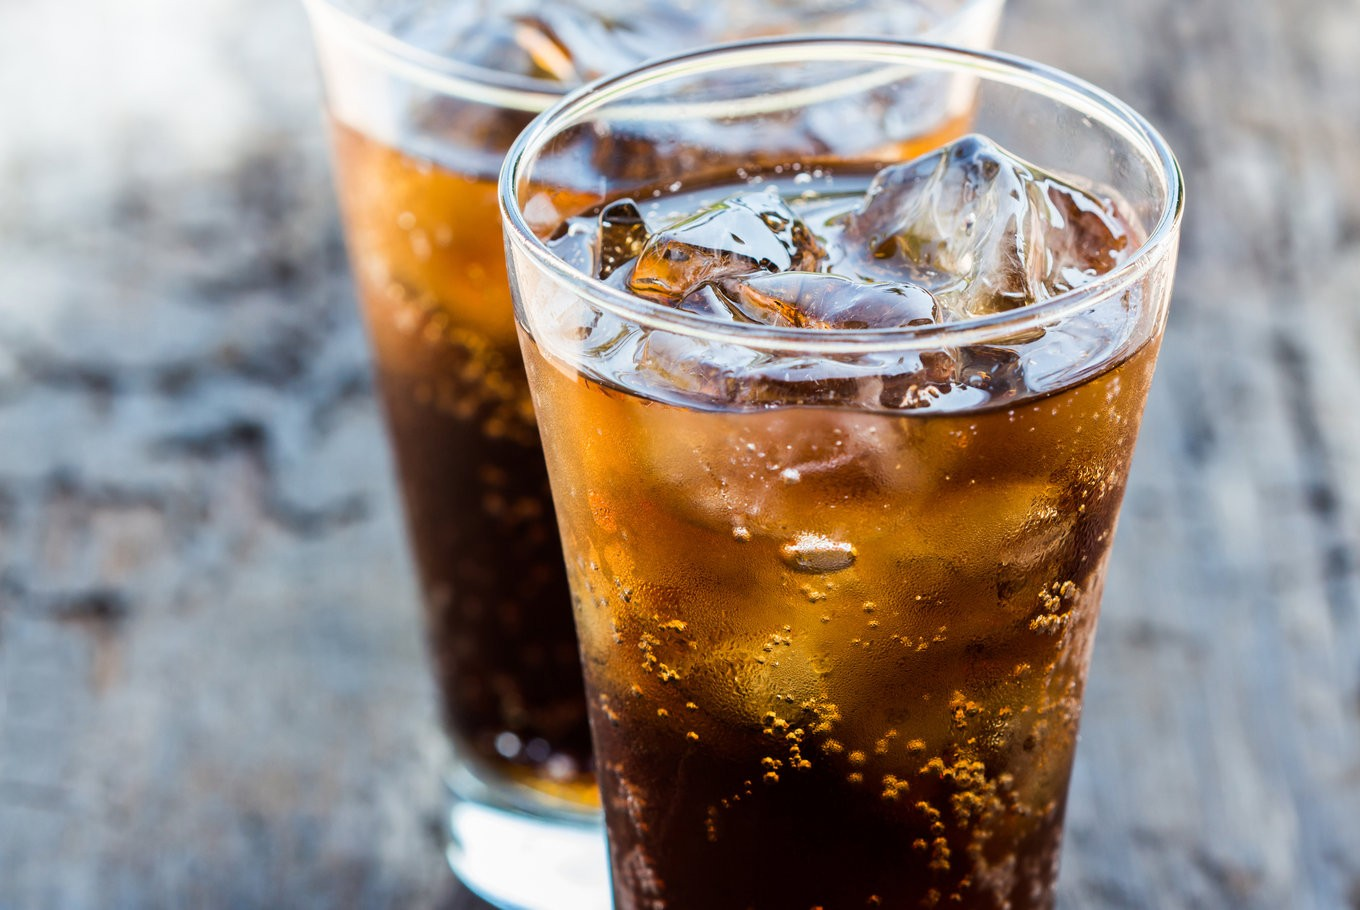 New study links drinking soda with higher risk of kidney disease